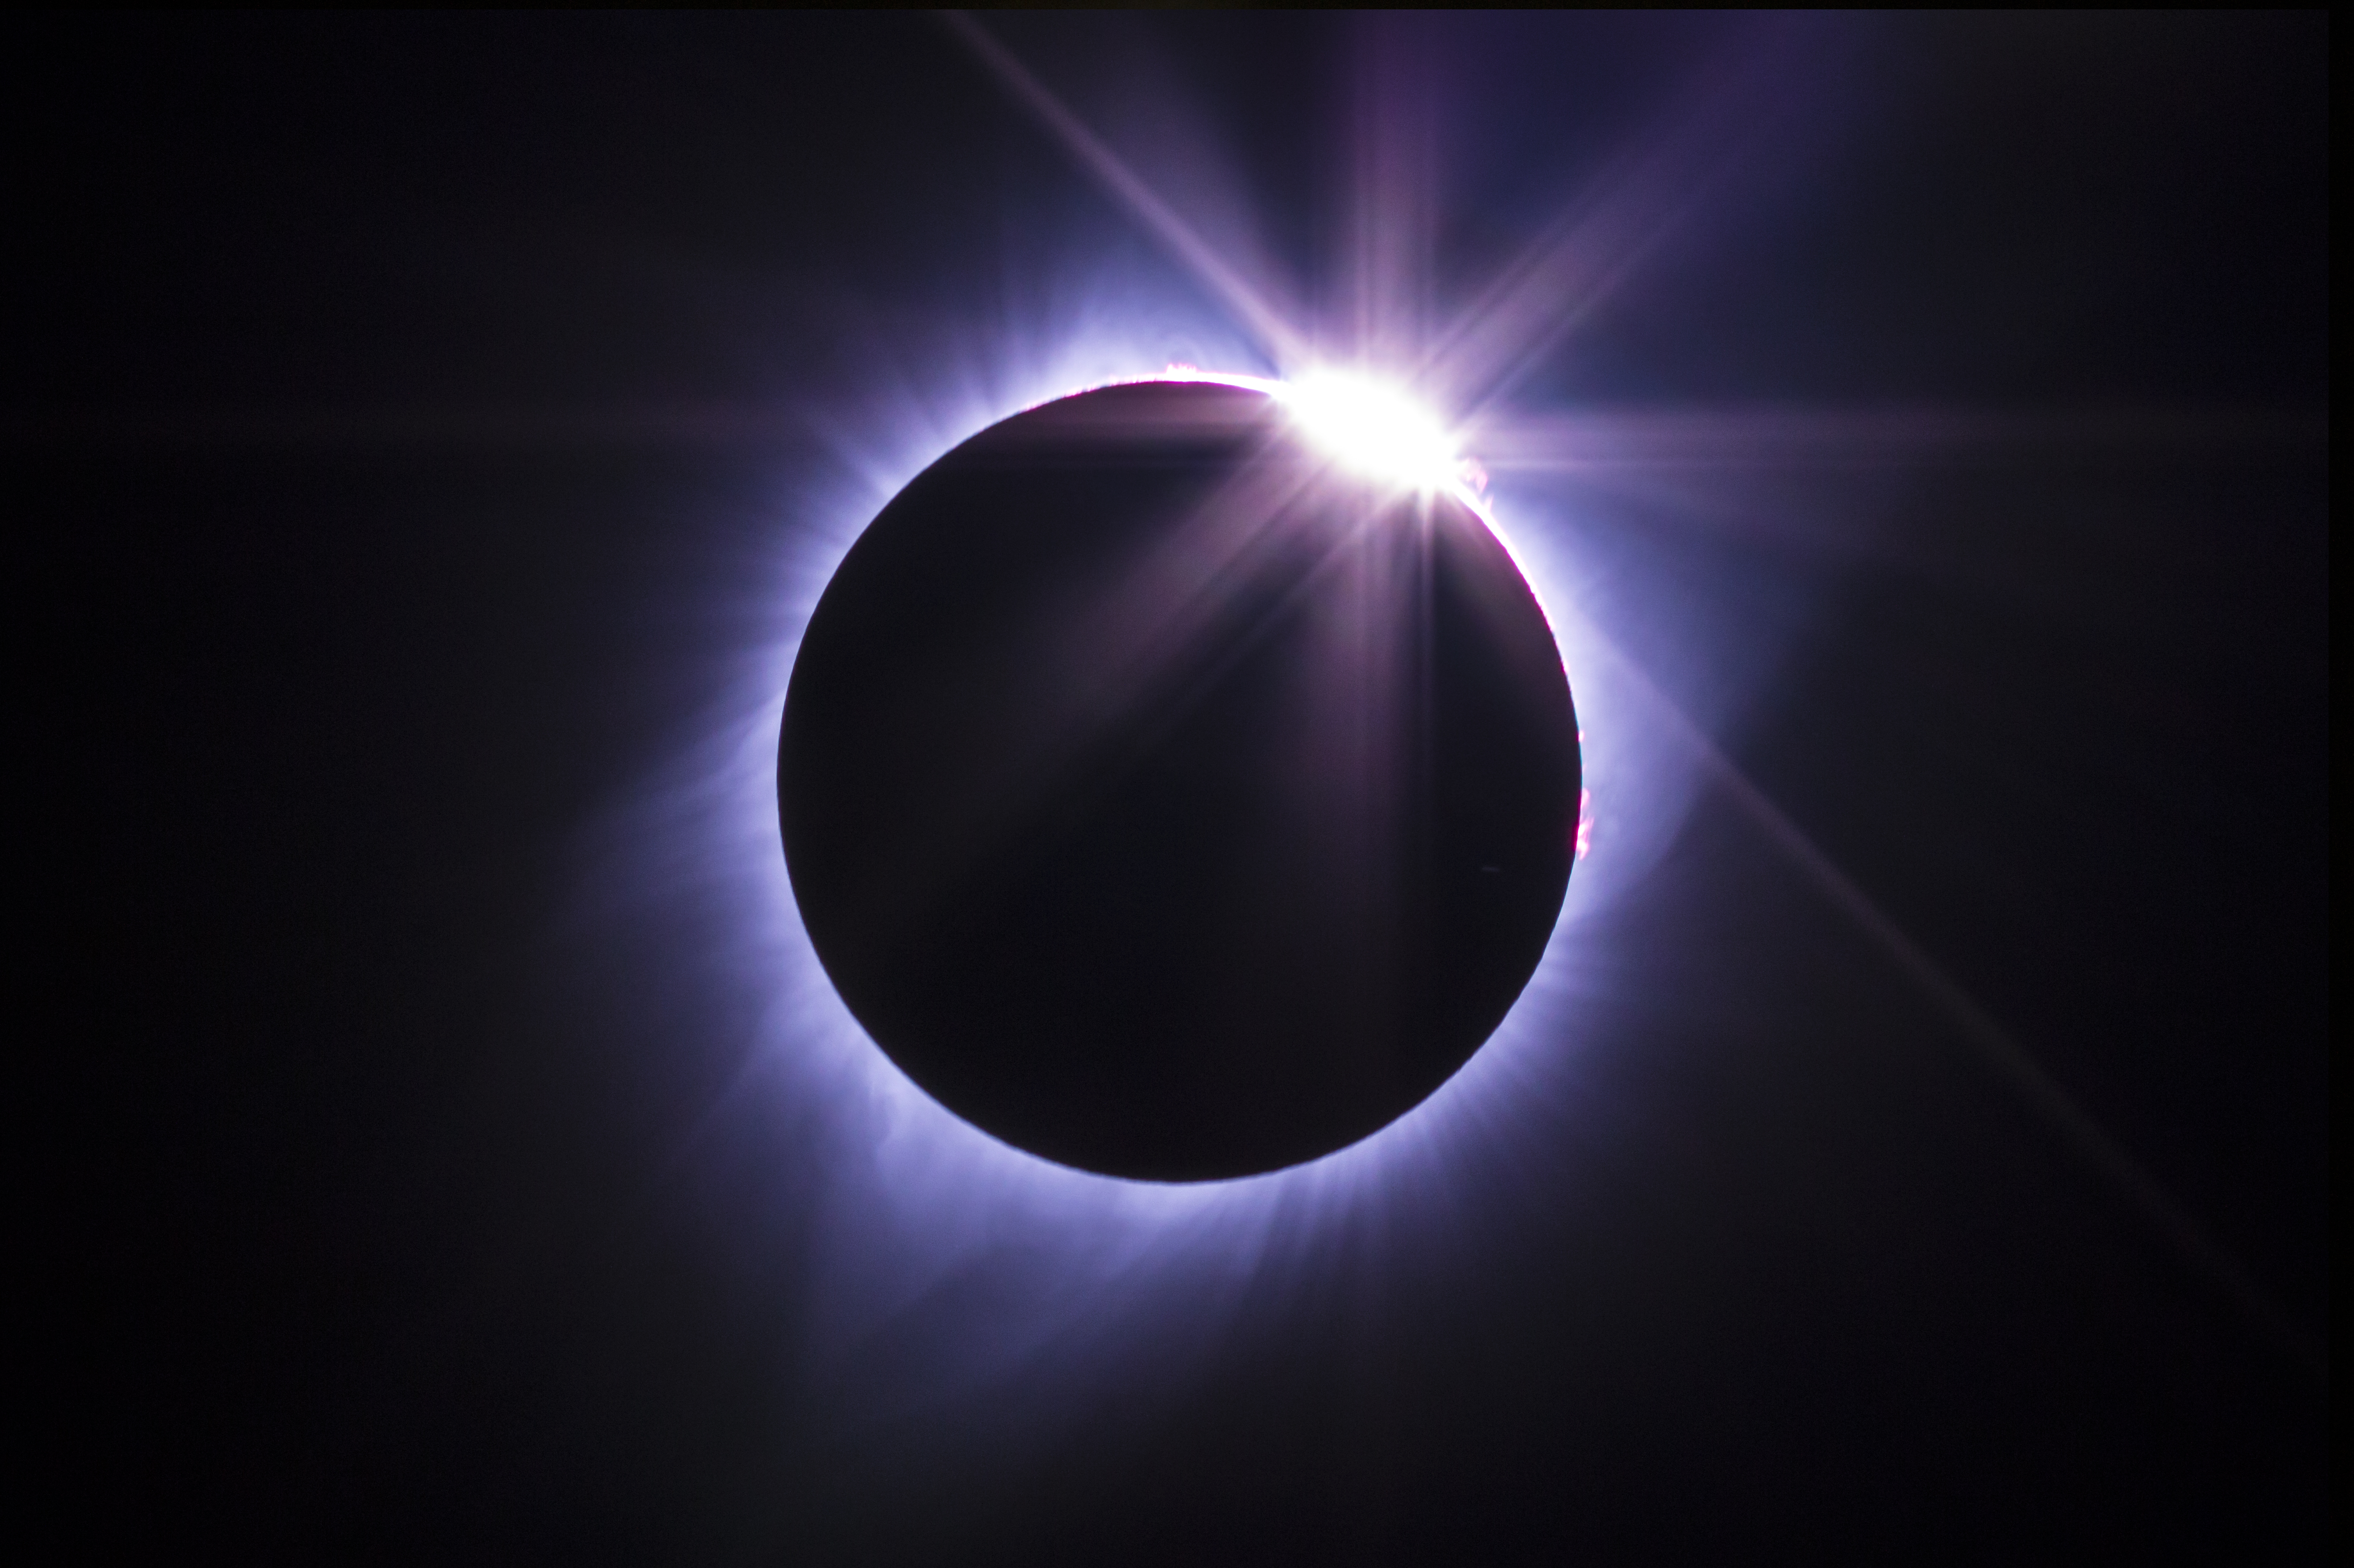 The diamond ring effect during totality